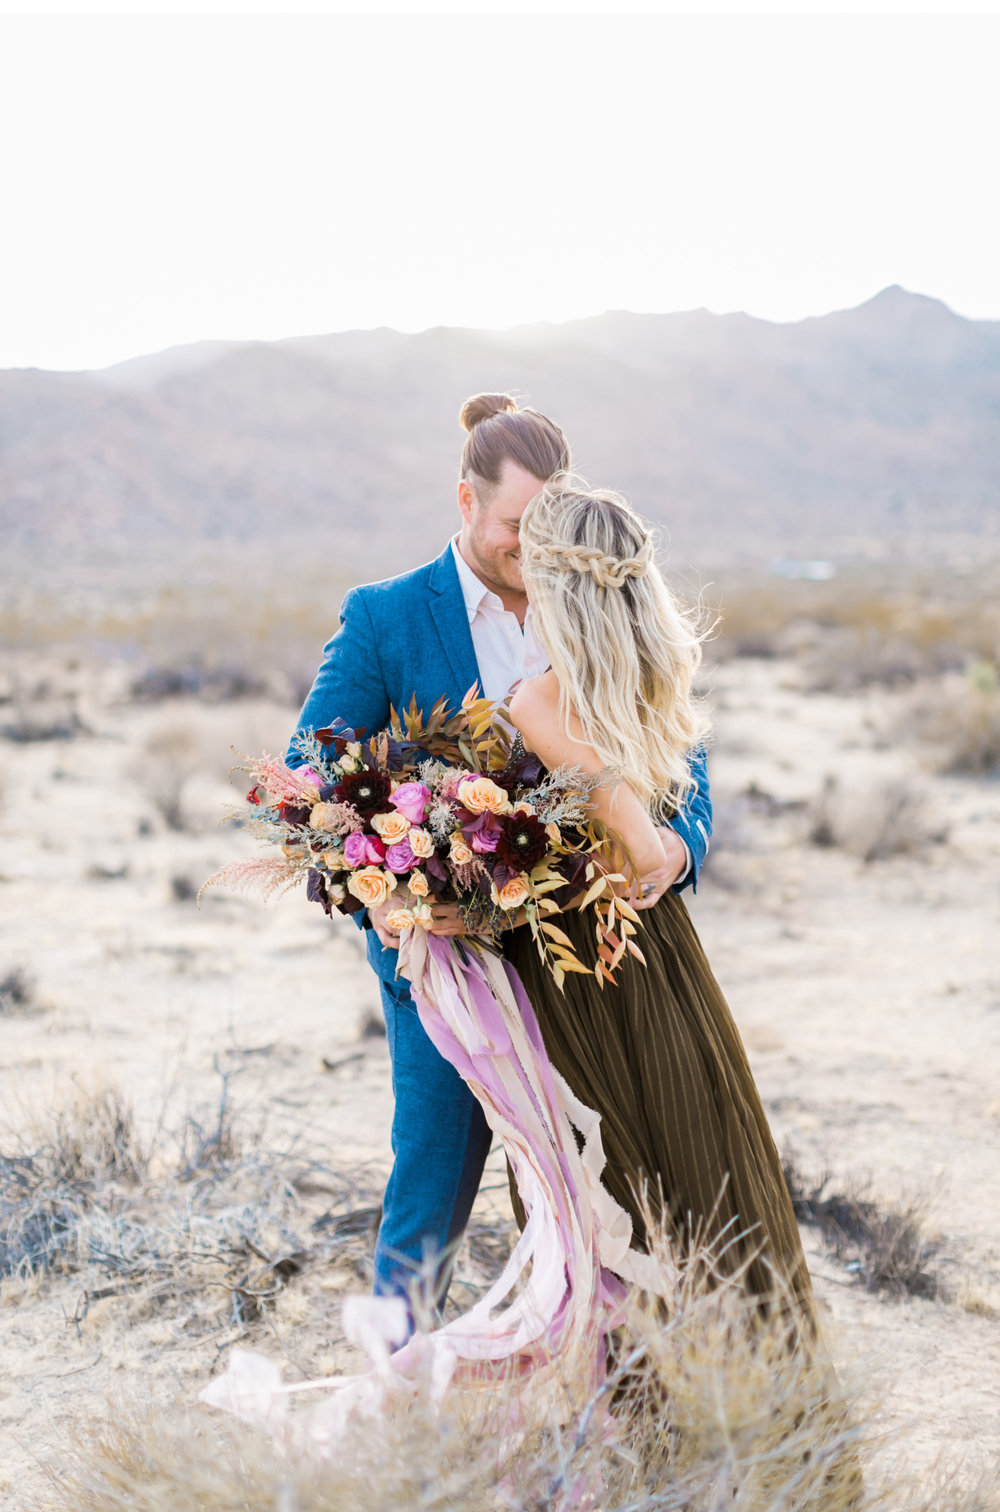 Joshua-Tree-Wedding-Natalie-Schutt-Photography-100-Layer-Cake_11.jpg